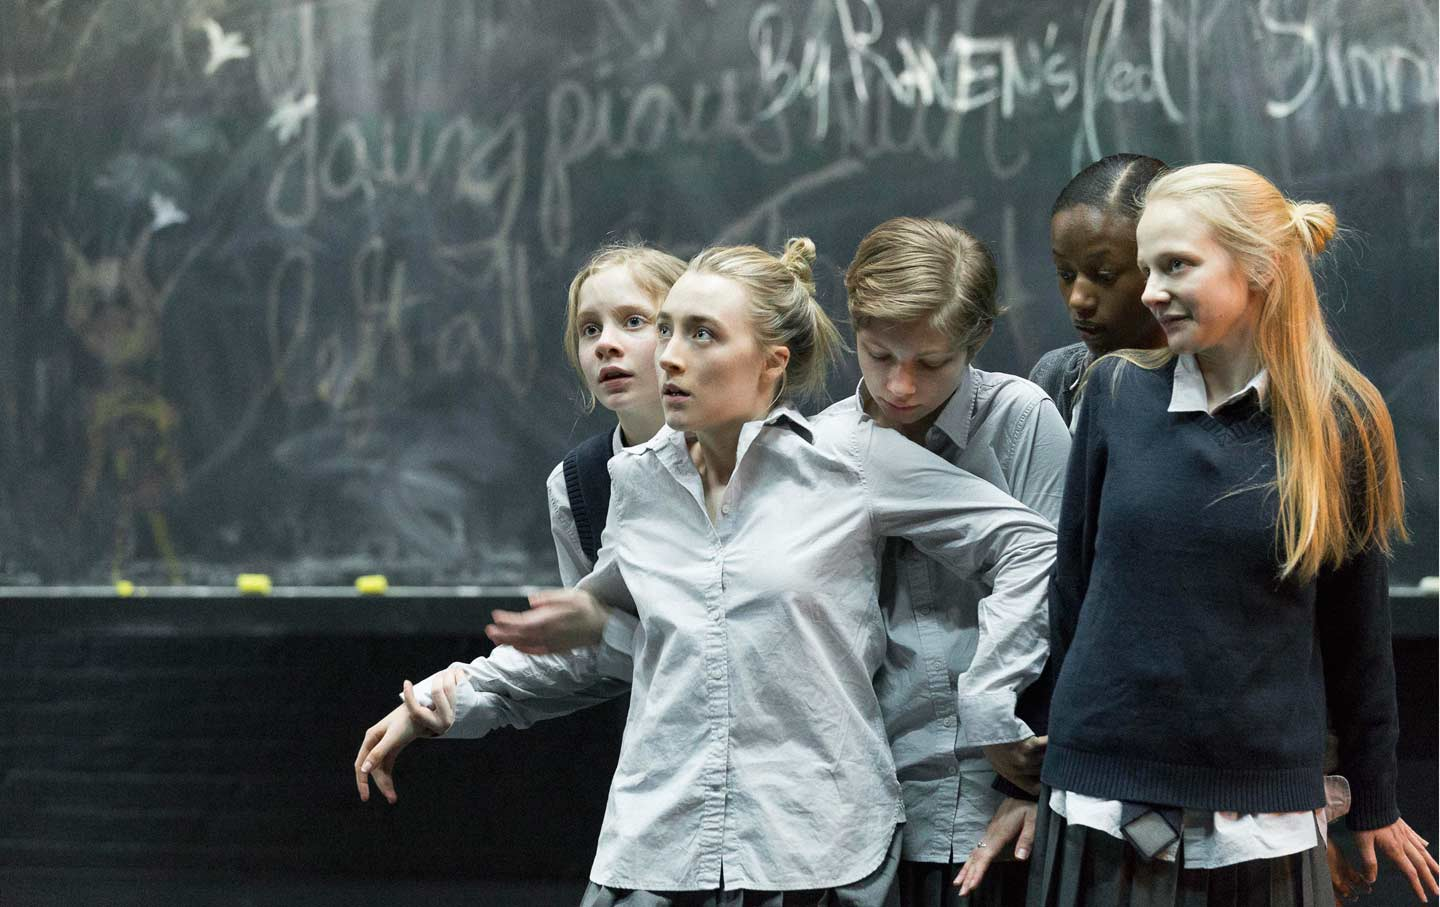 arthur miller s chameleon play the nation a scene from arthur miller s the crucible directed by ivo van hove jan versweyveld